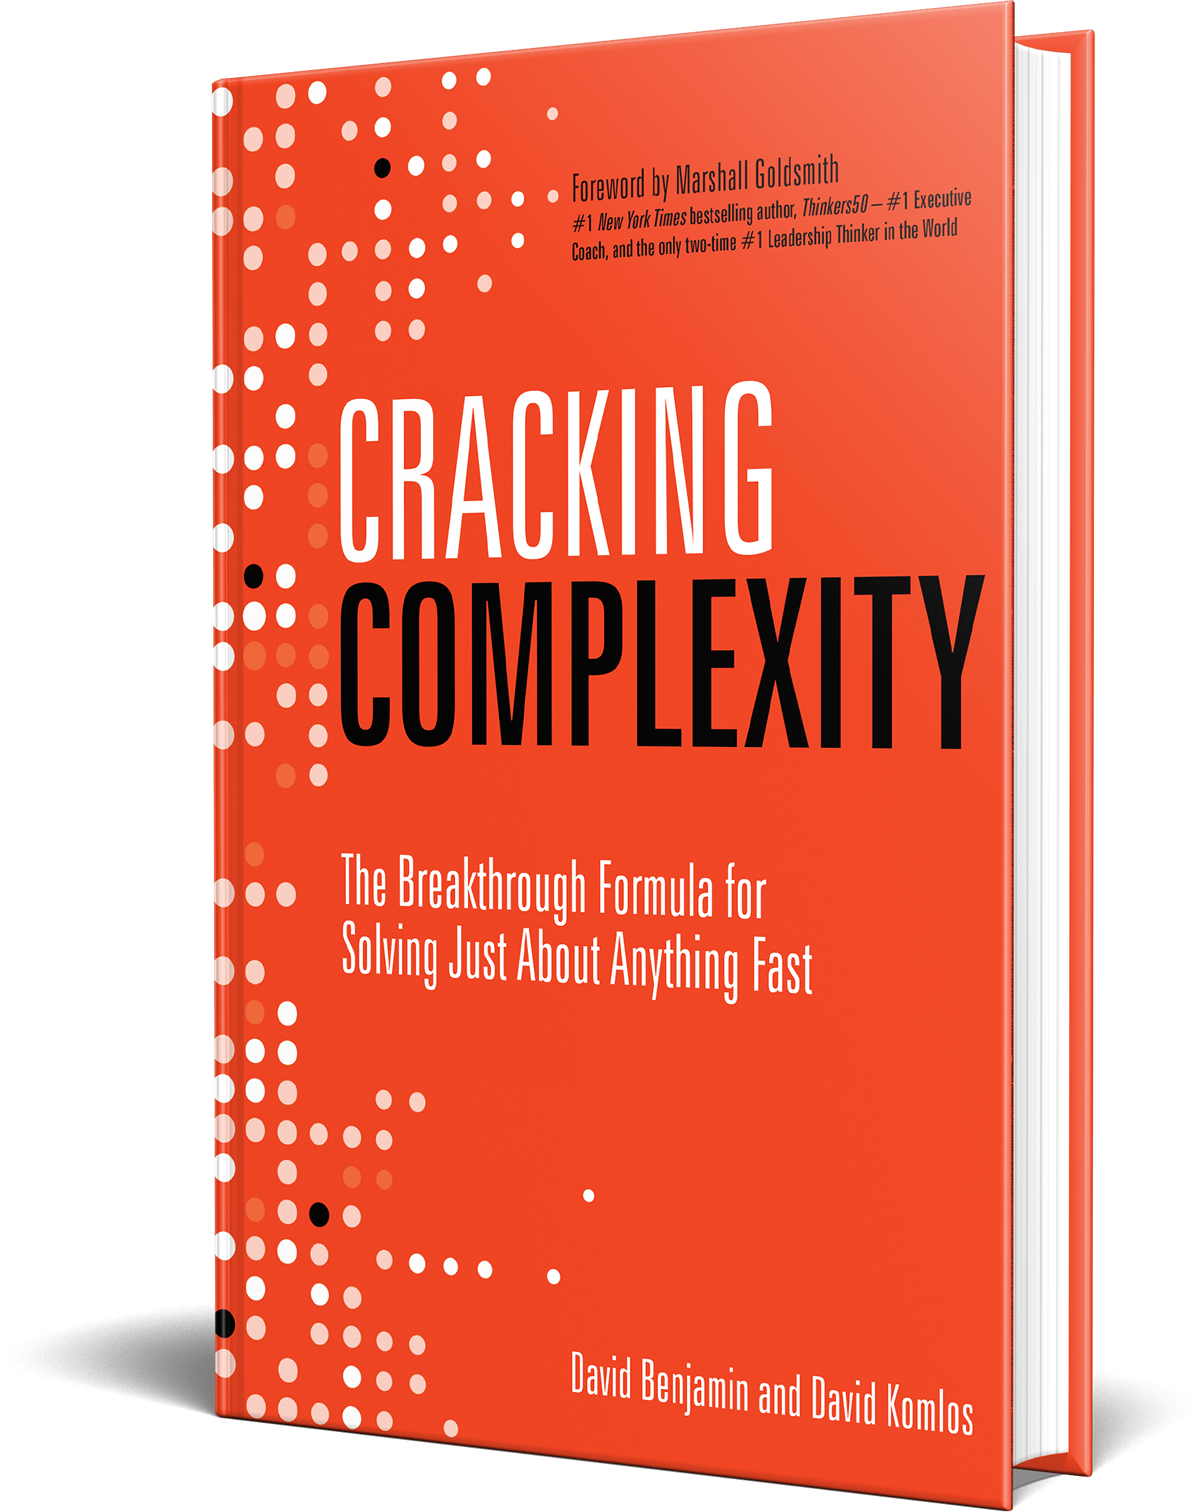 Cracking complexity book